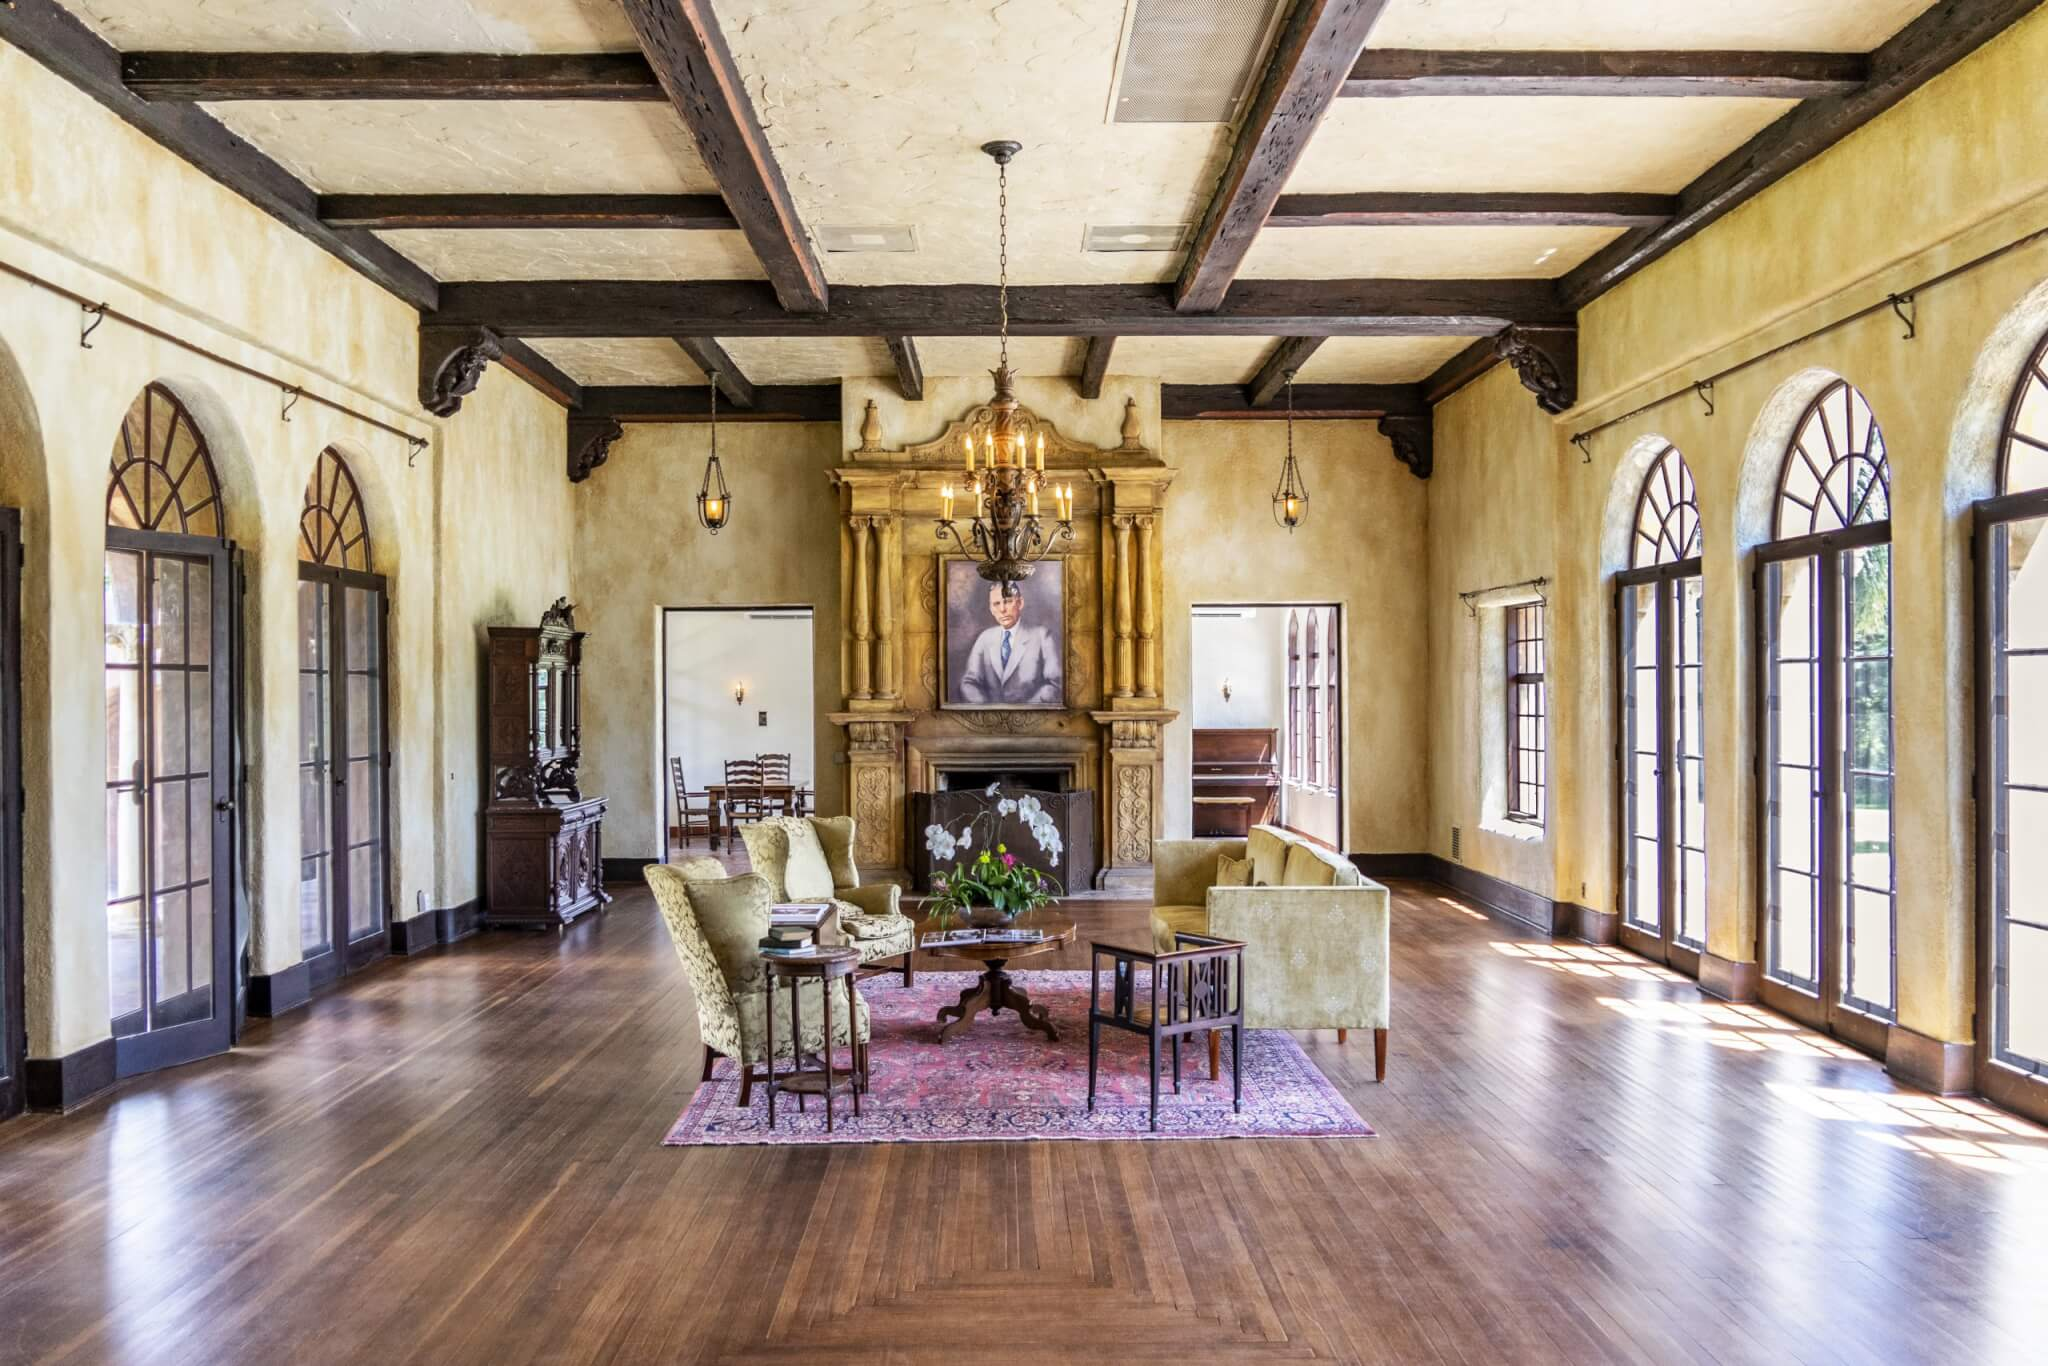 Interior of Howey Mansion shows a large living room.